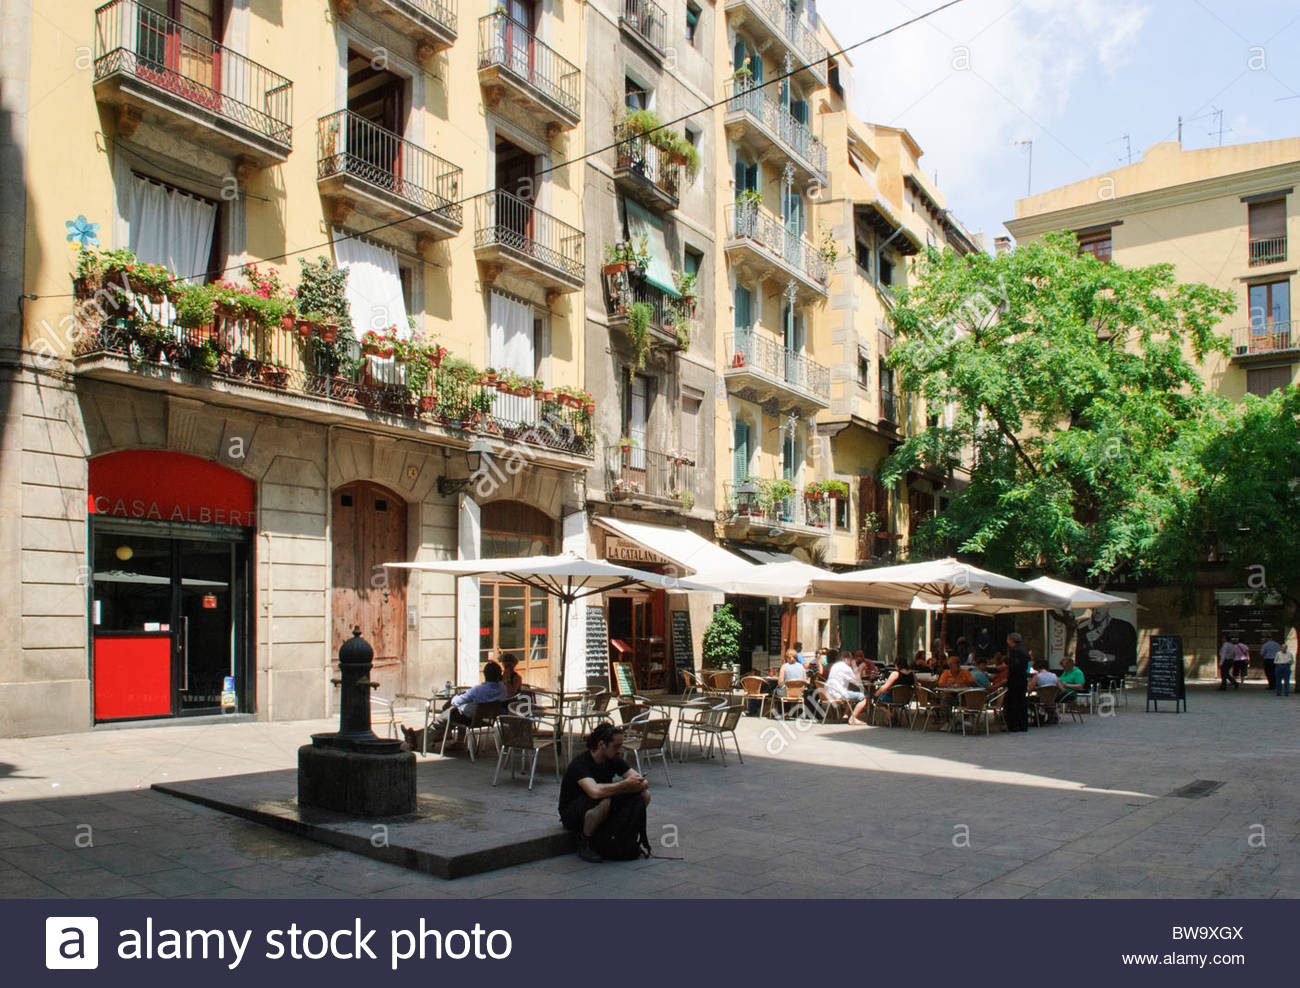 Plaça Sant Felip Neri Barcelona, people sit around outside tables on Plaza de les Olles square in ...